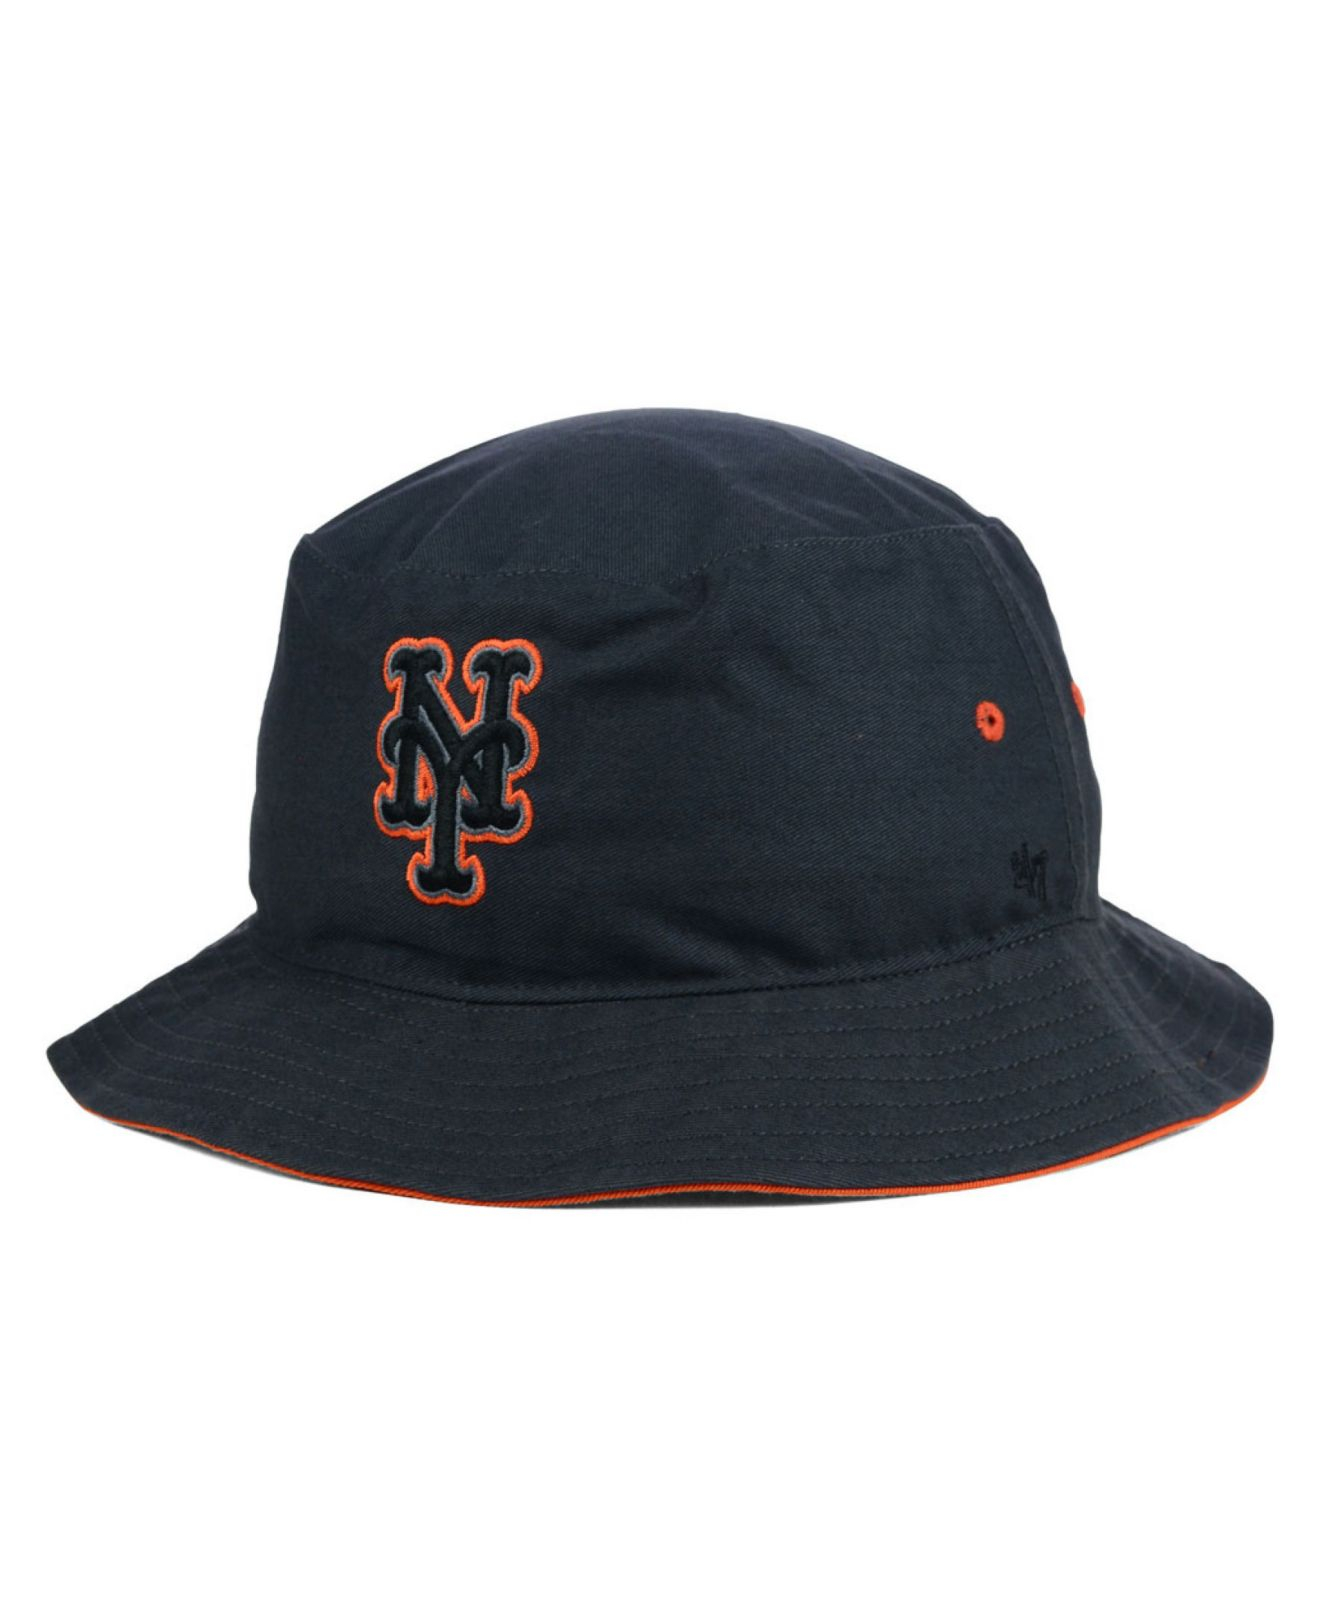 2552922b5b2b6 ... lyst 47 brand new york mets turbo bucket hat in gray